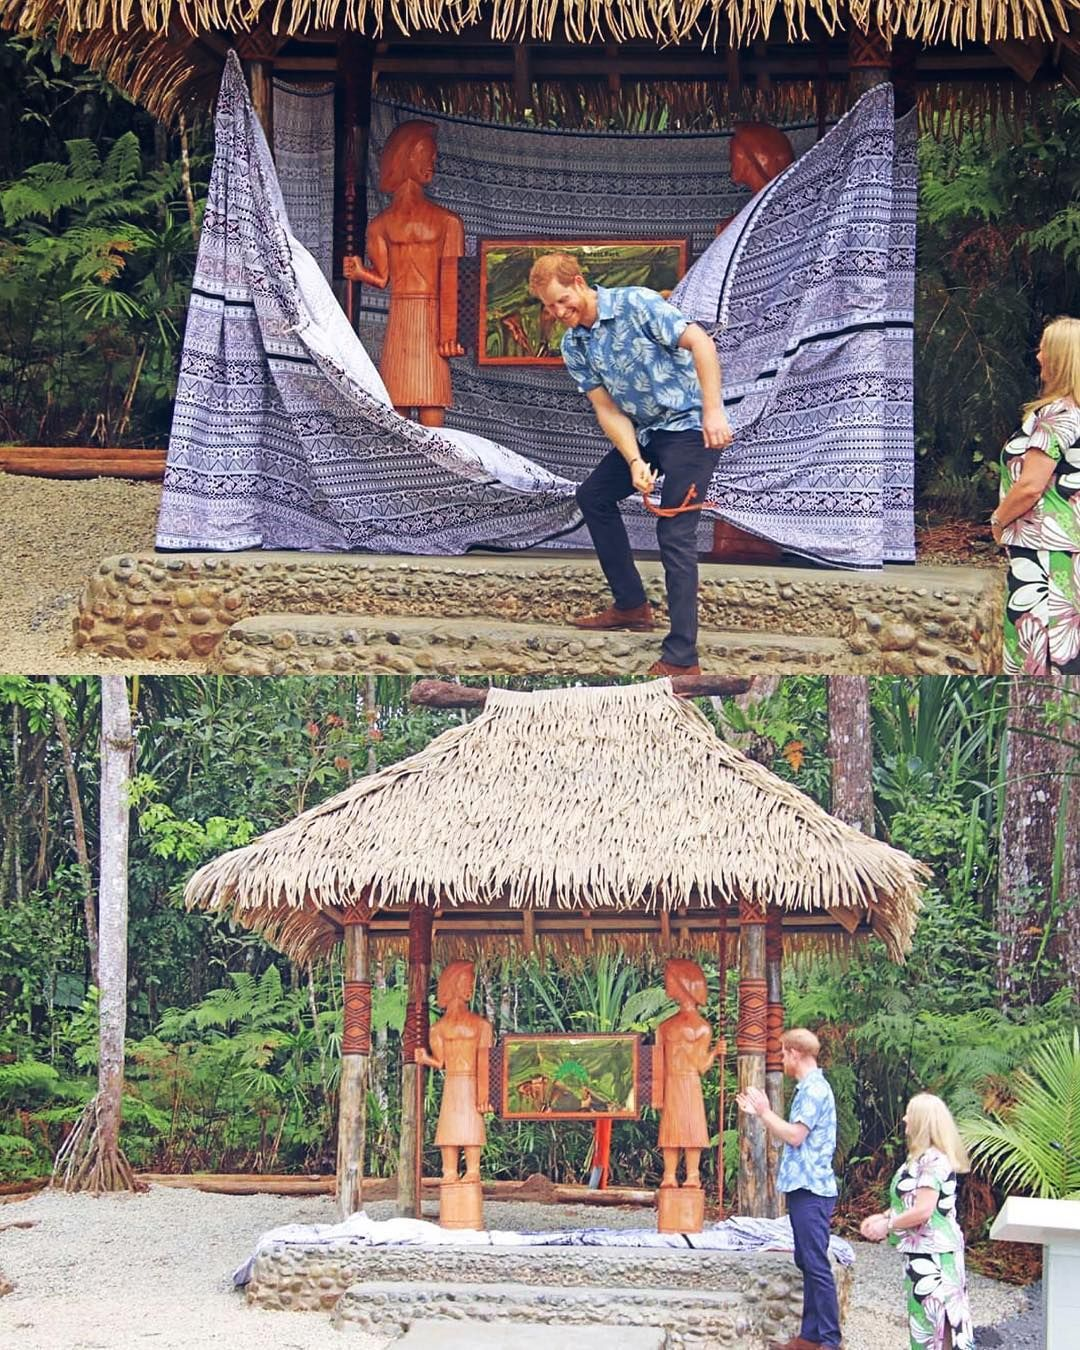 Update Second Engagement The Duke Traveled To Colo I Suva Forest Park Colo I Suva Is An Indigenous Forest Site Hous Forest Park Suva Prince Harry And Meghan